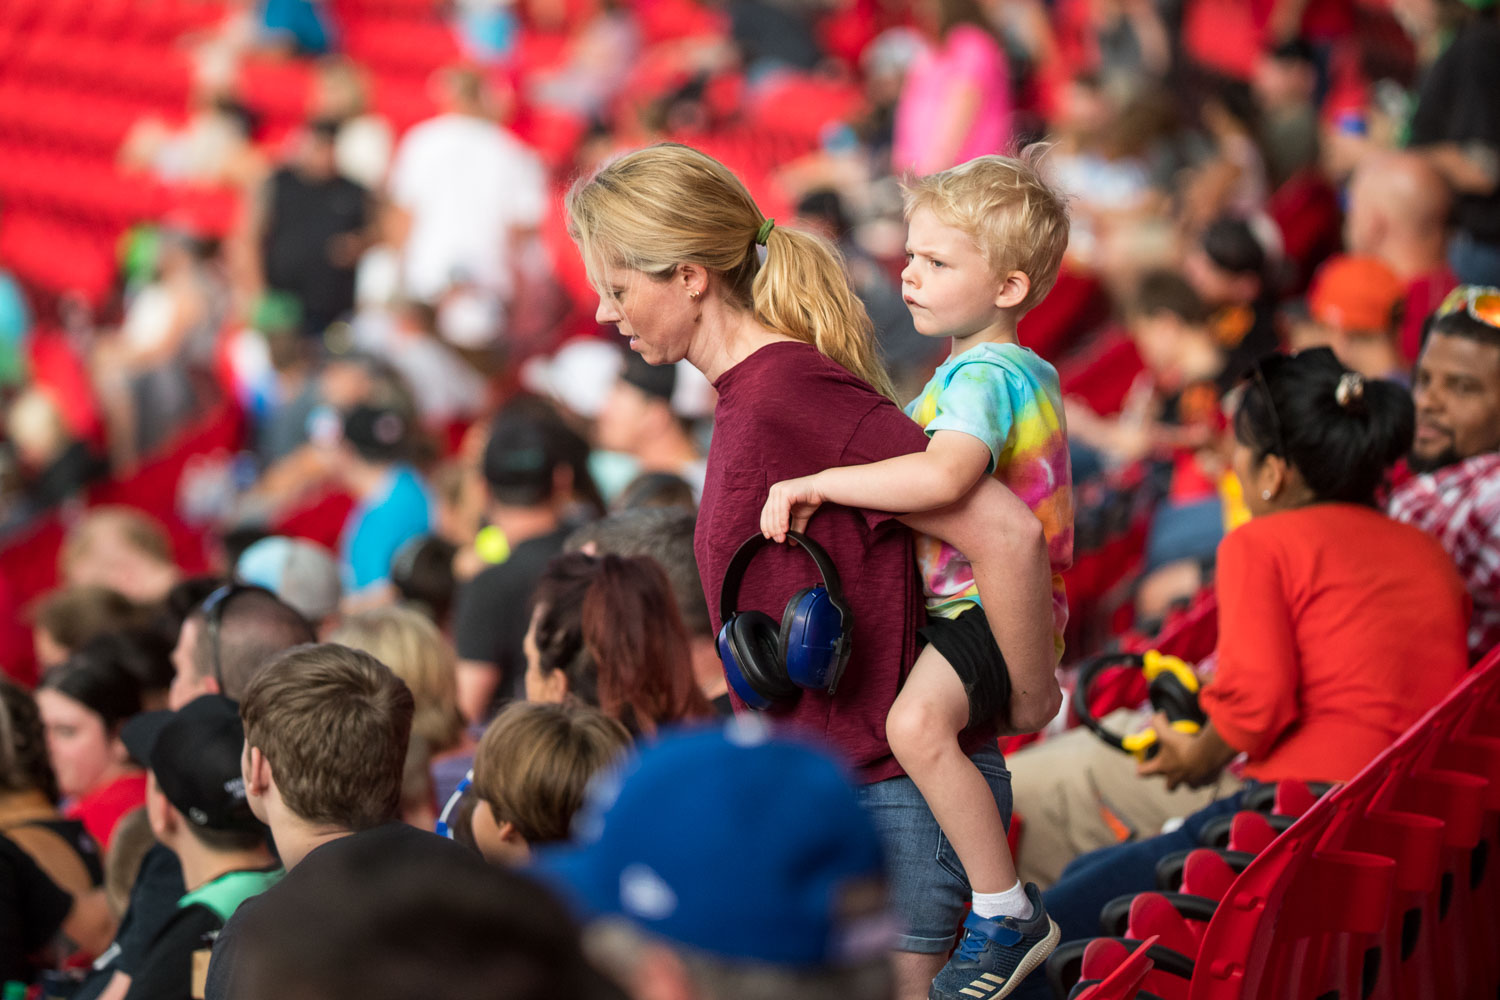 A mother and son make their way to their seats during Monster Jam at GEHA Field at Arrowhead on Saturday evening, June 26, 2021.